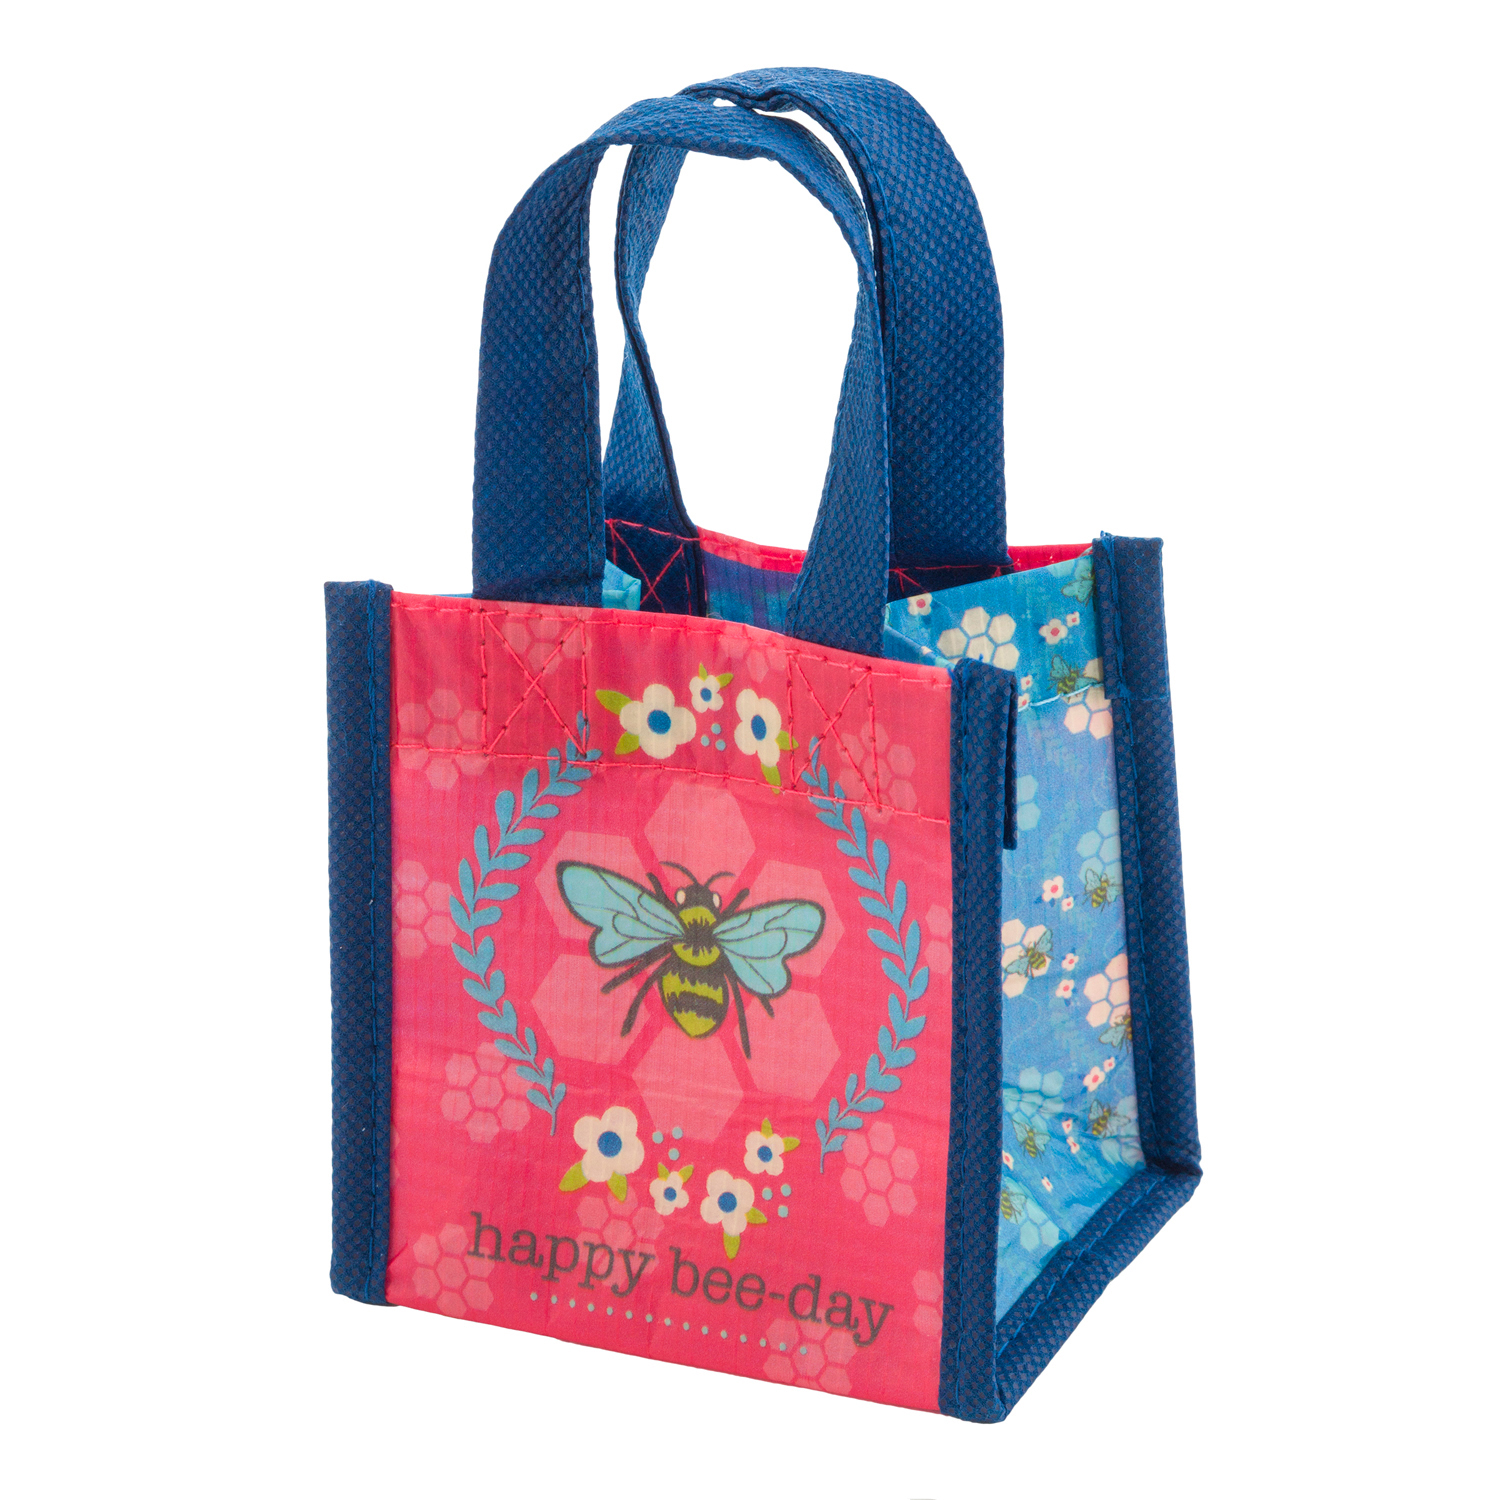 Happy Bee Day Small Gift Bag